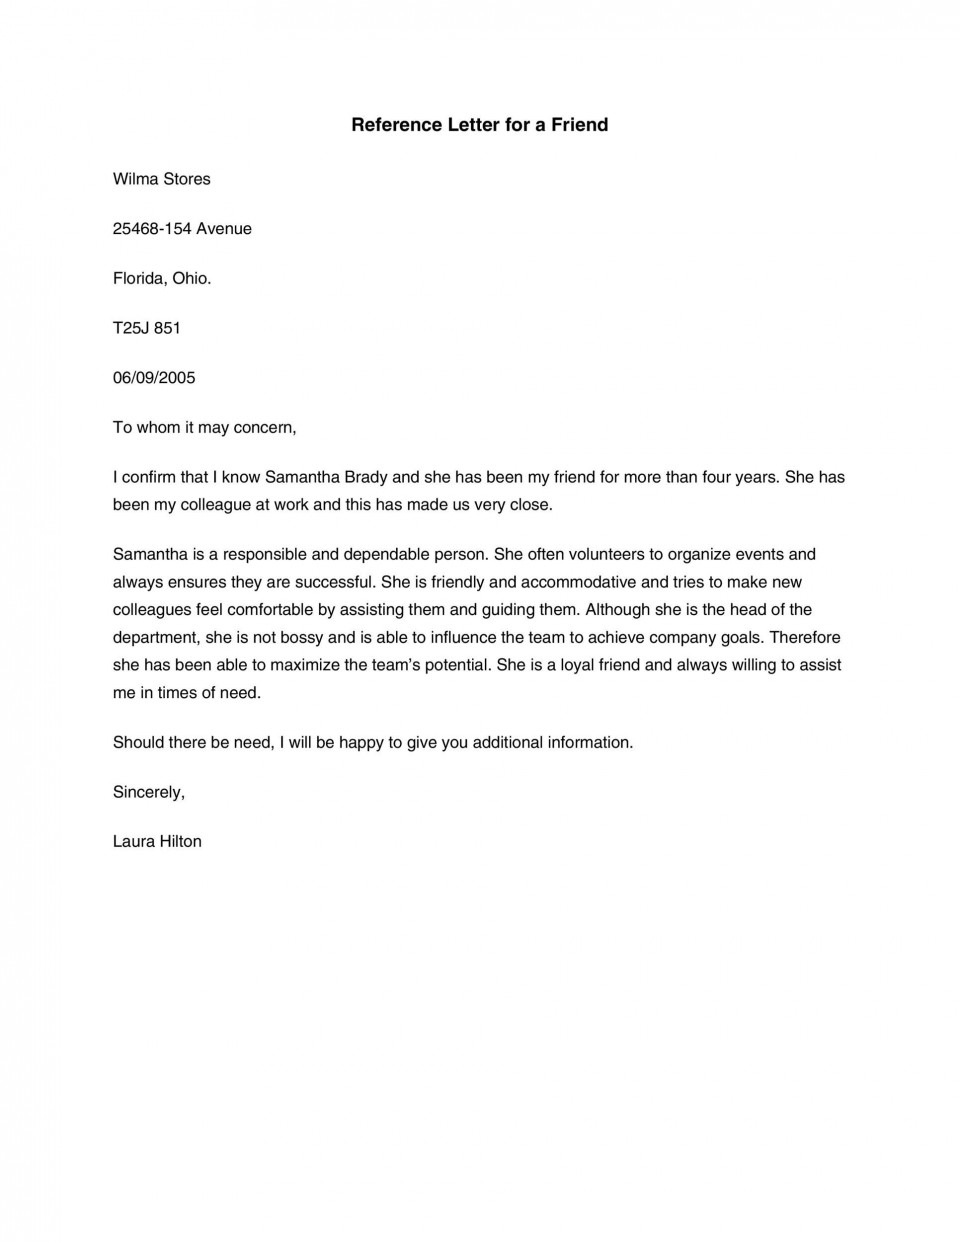 007 Astounding Free Reference Letter Template For Friend Example 960